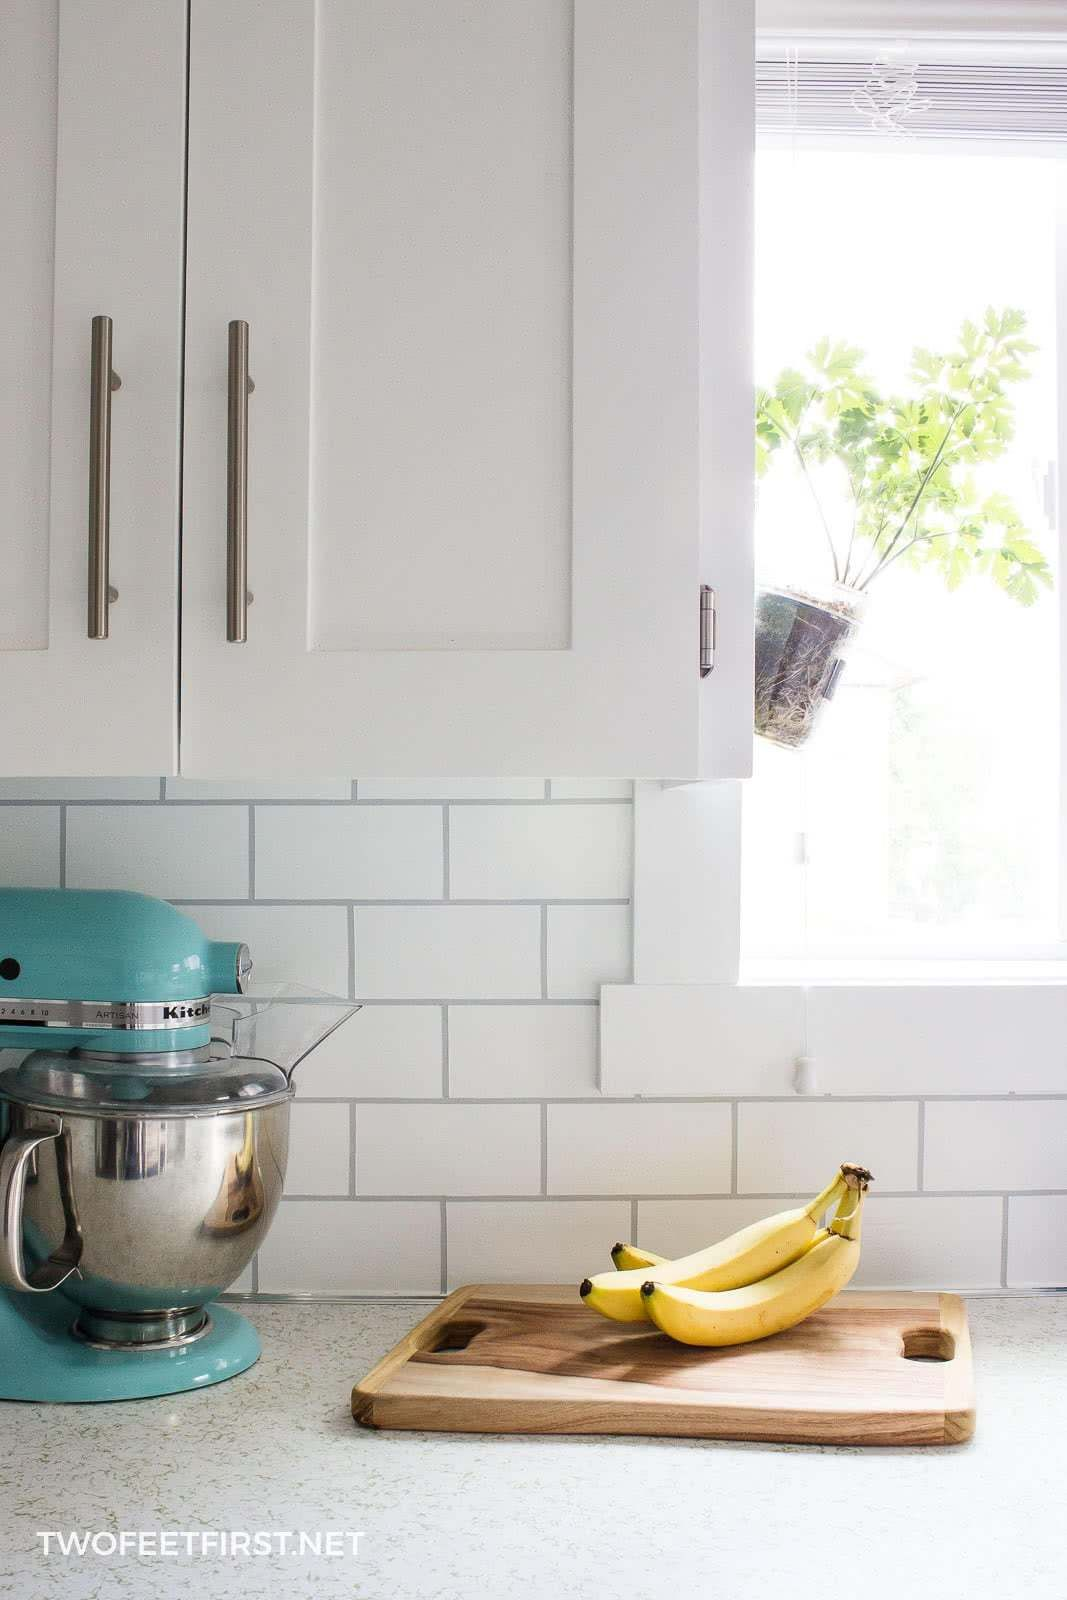 How To Paint A Backsplash To Look Like Tile Kitchen Sink Diy